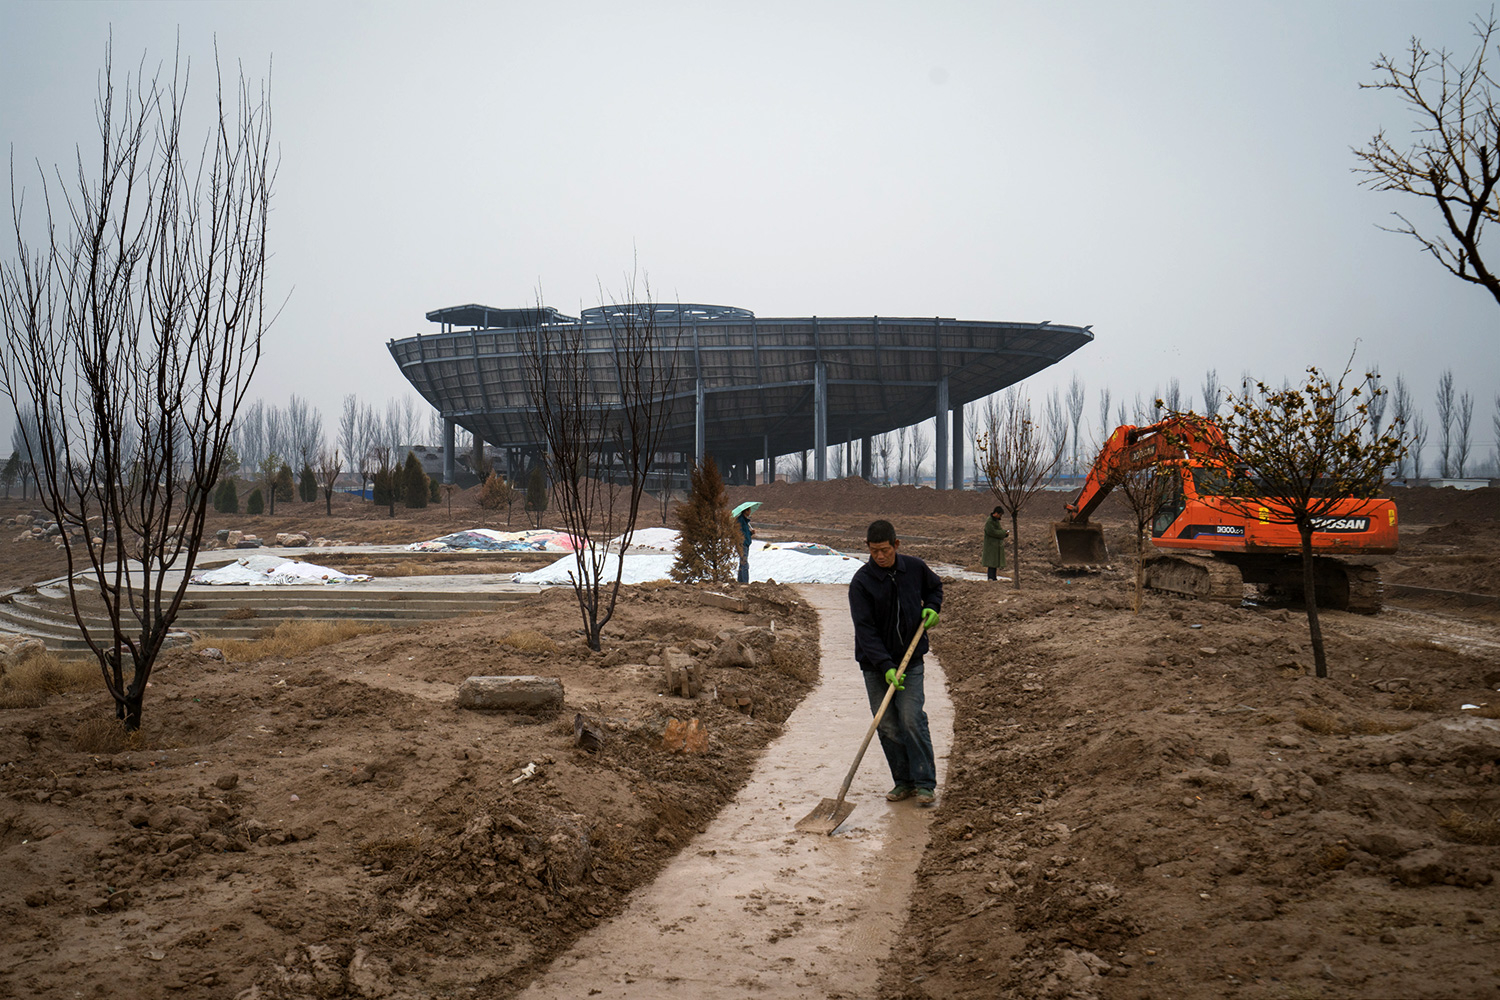 A replica of the Saudi Arabia Pavilion, seen in the background, that was built for the Shanghai World Expo 2010, is one of the buildings being constructed in phase two of construction of the Hui Culture Park. The original was designed to resemble an oil tanker.